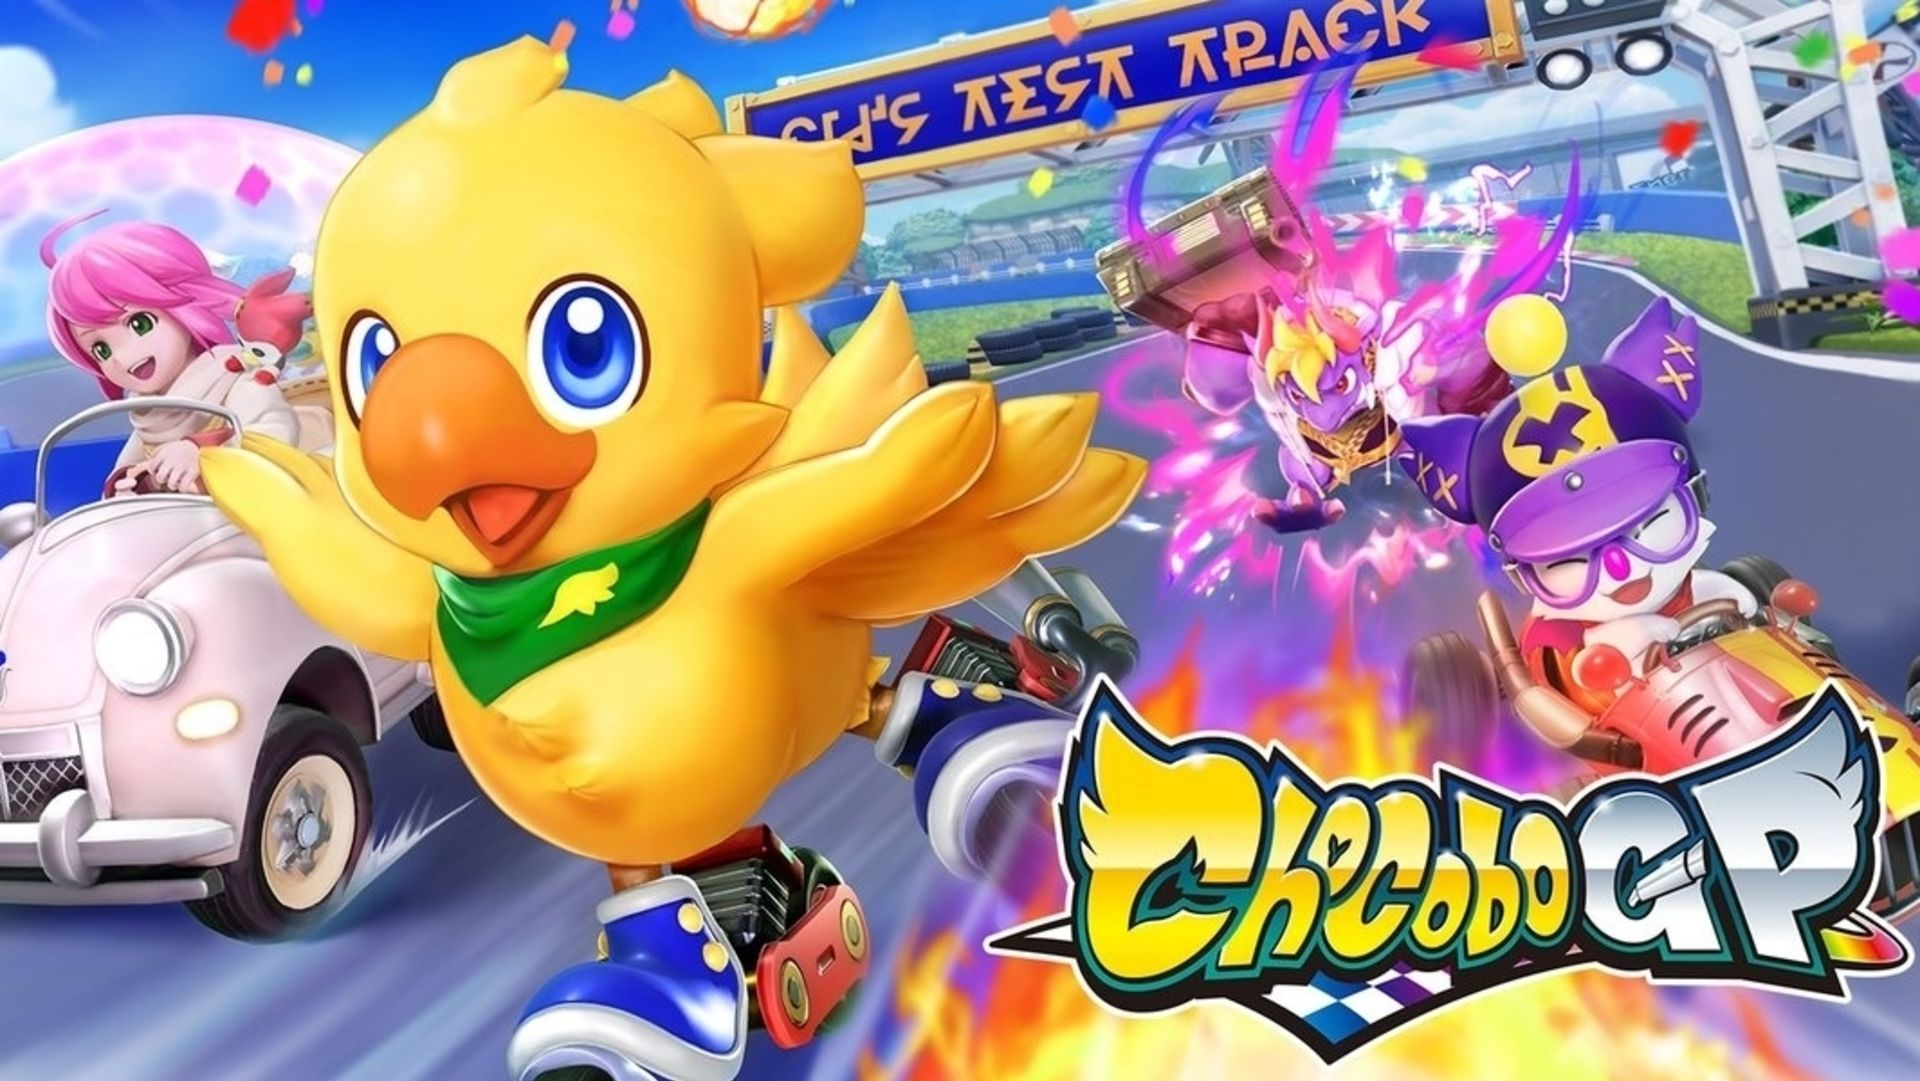 Final Fantasy is currently a full-on Chocobo racing game, out of 2022